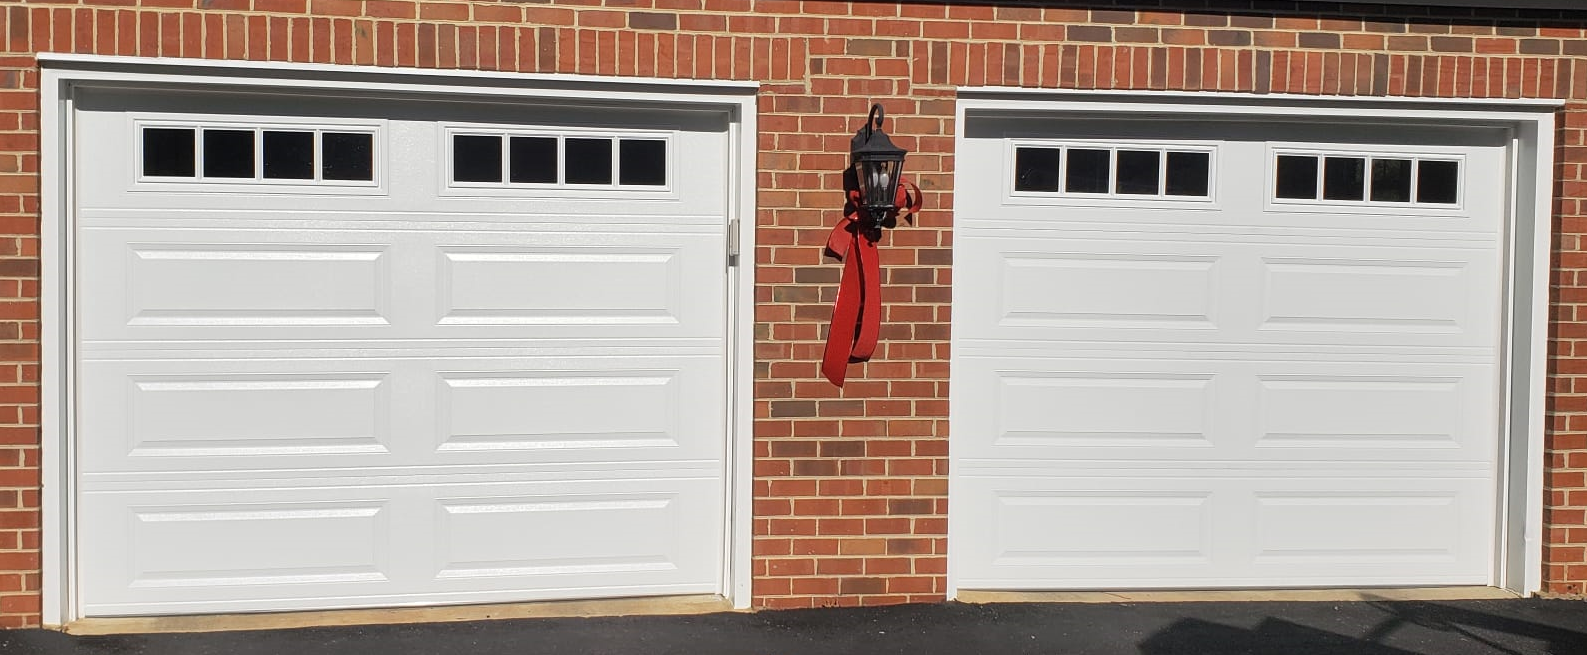 Two 9x7 Model 4251 Long Panel Garage Doors With Top Square Madison Glass Installed By The Richmond Store Teamappledoor Garage Doors Garage Door Panels Doors